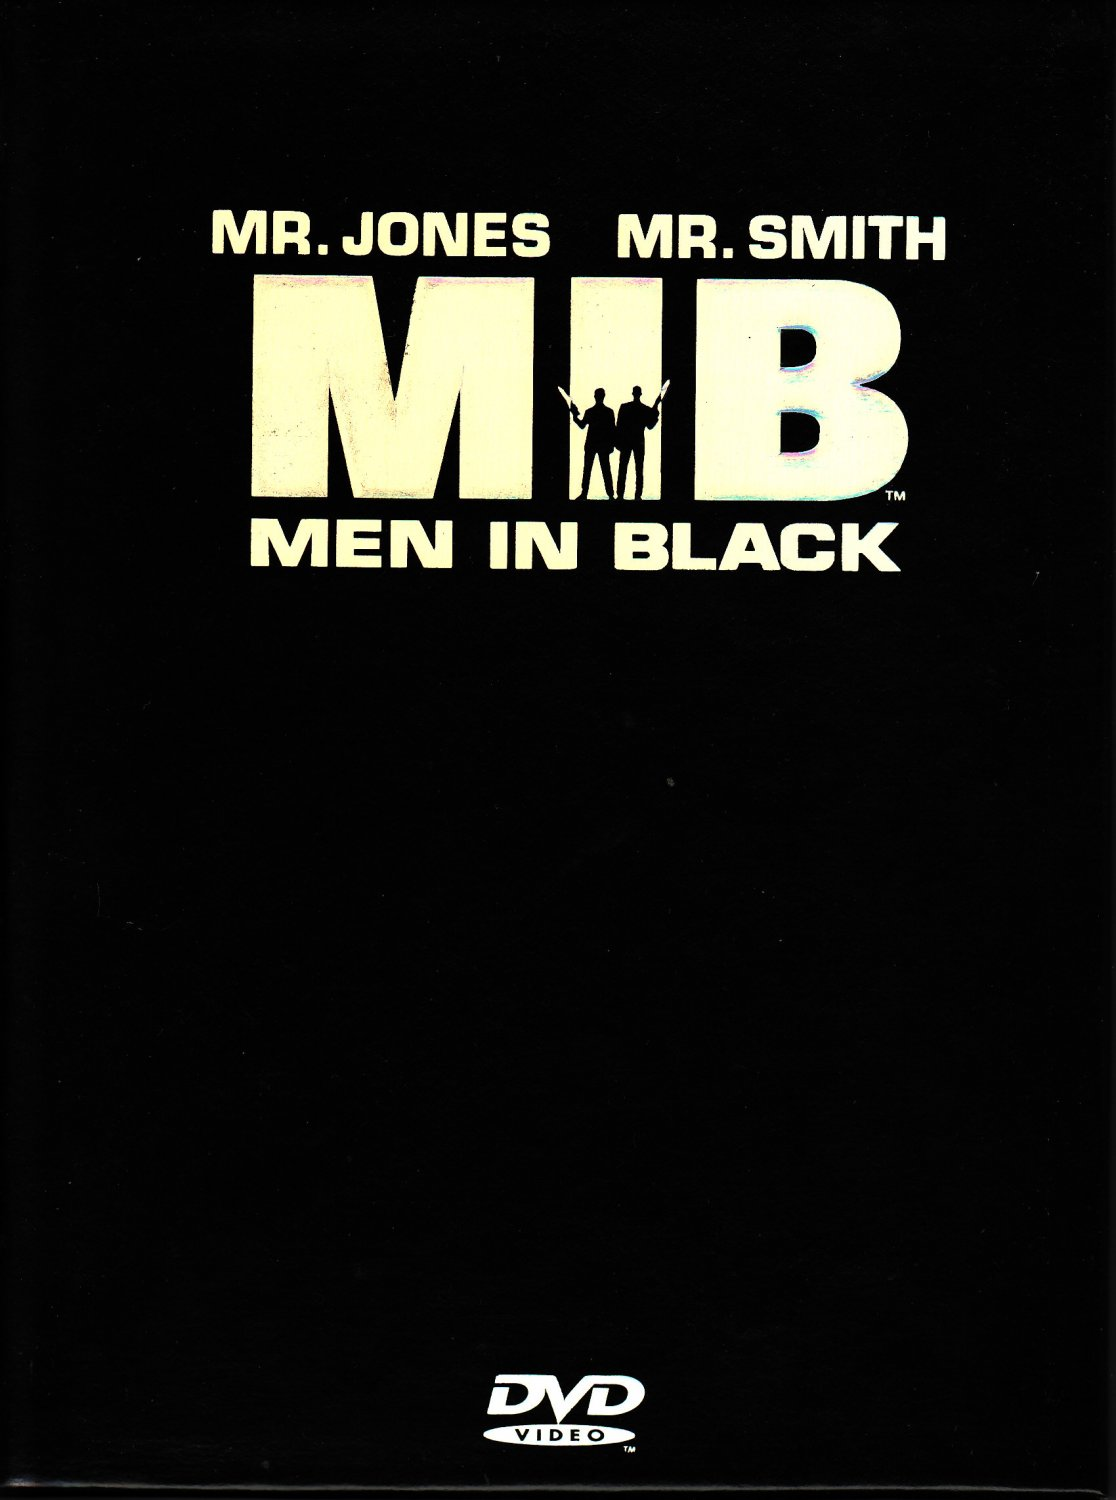 Men In Black 2-Disc DVD Will Smith Tommy Lee Jones Free Shipping